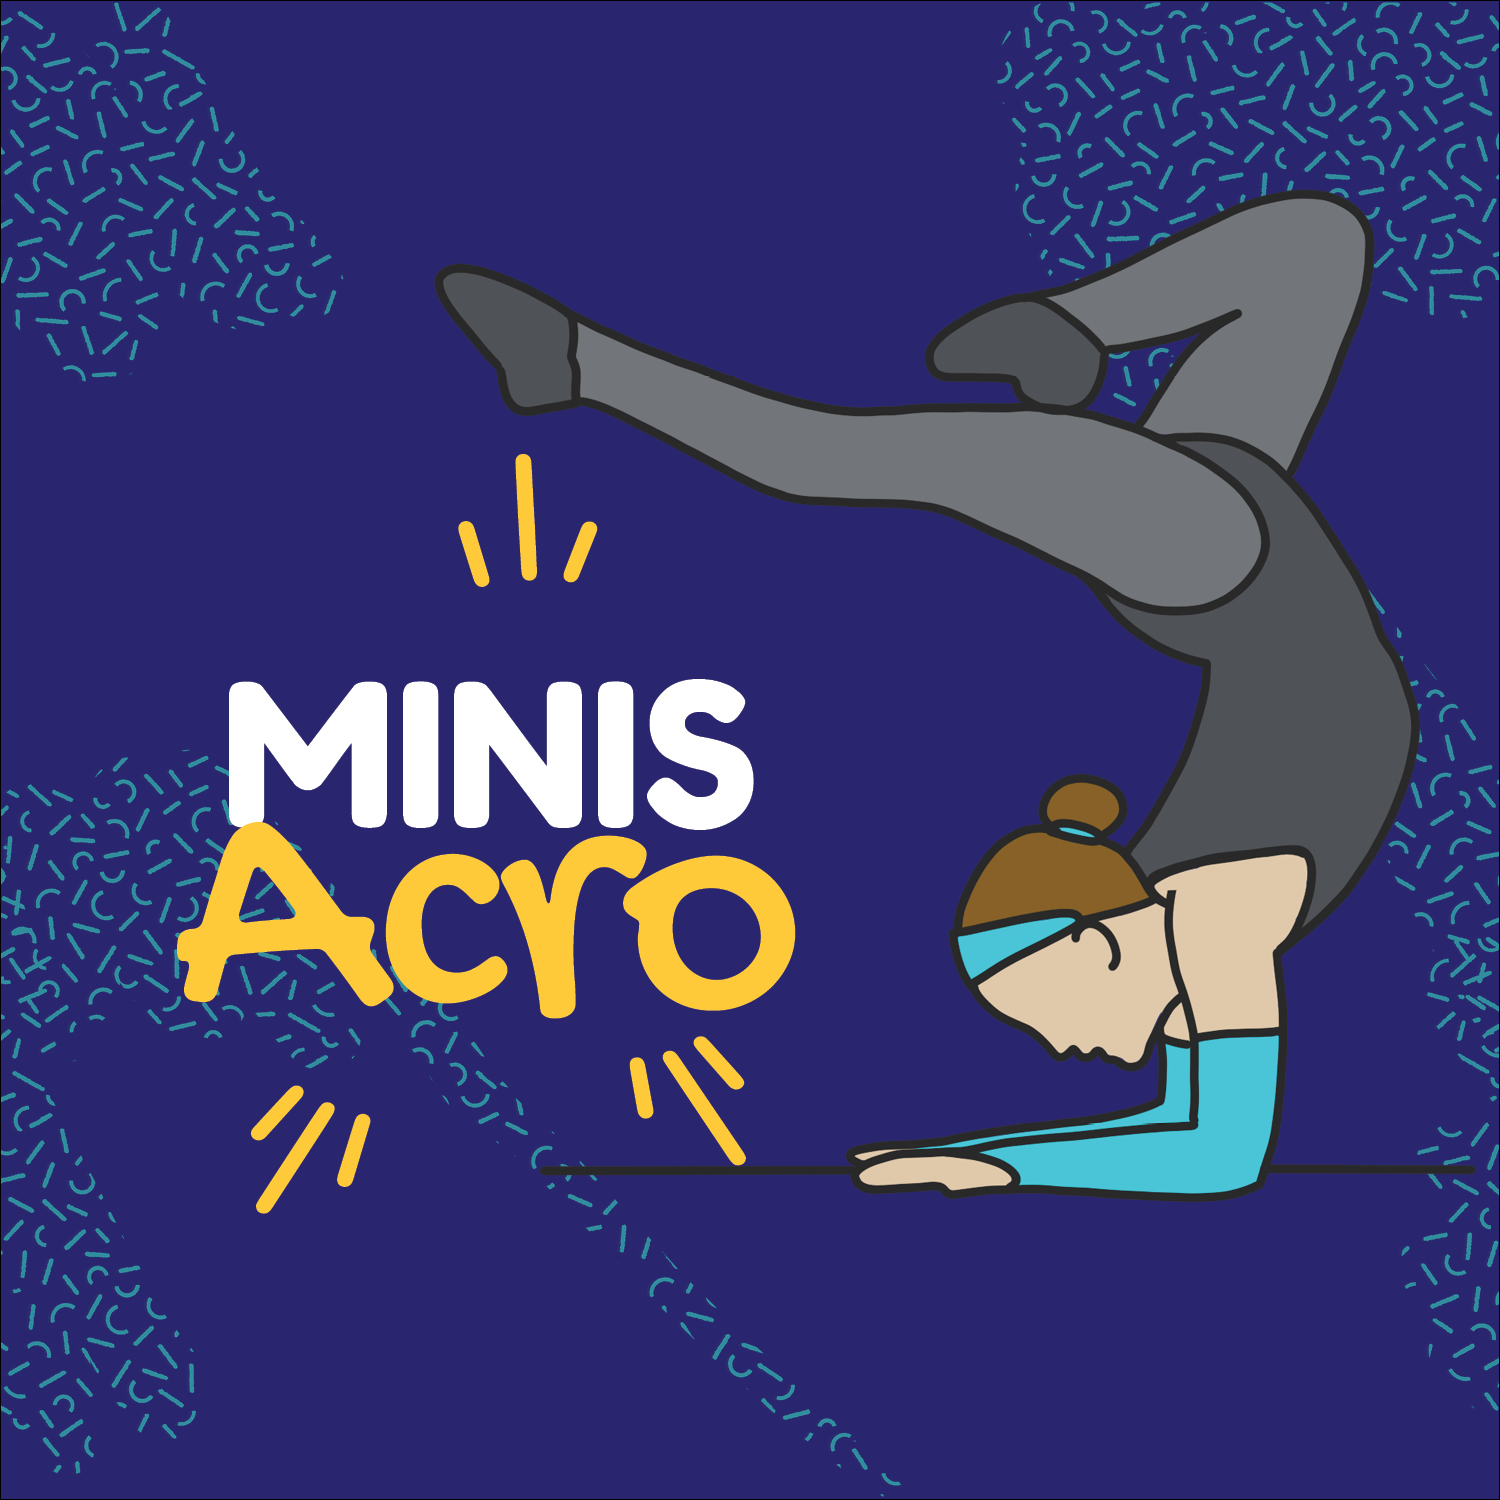 Mini Acro - June 10th - June 28thTuesdays 9:00 to 9:45amJuly 8th - July 26Tuesdays 9:00 to 9:45amAn introduction to Acro limbering, balancing, tumbling, strength and flexibility.Price $41